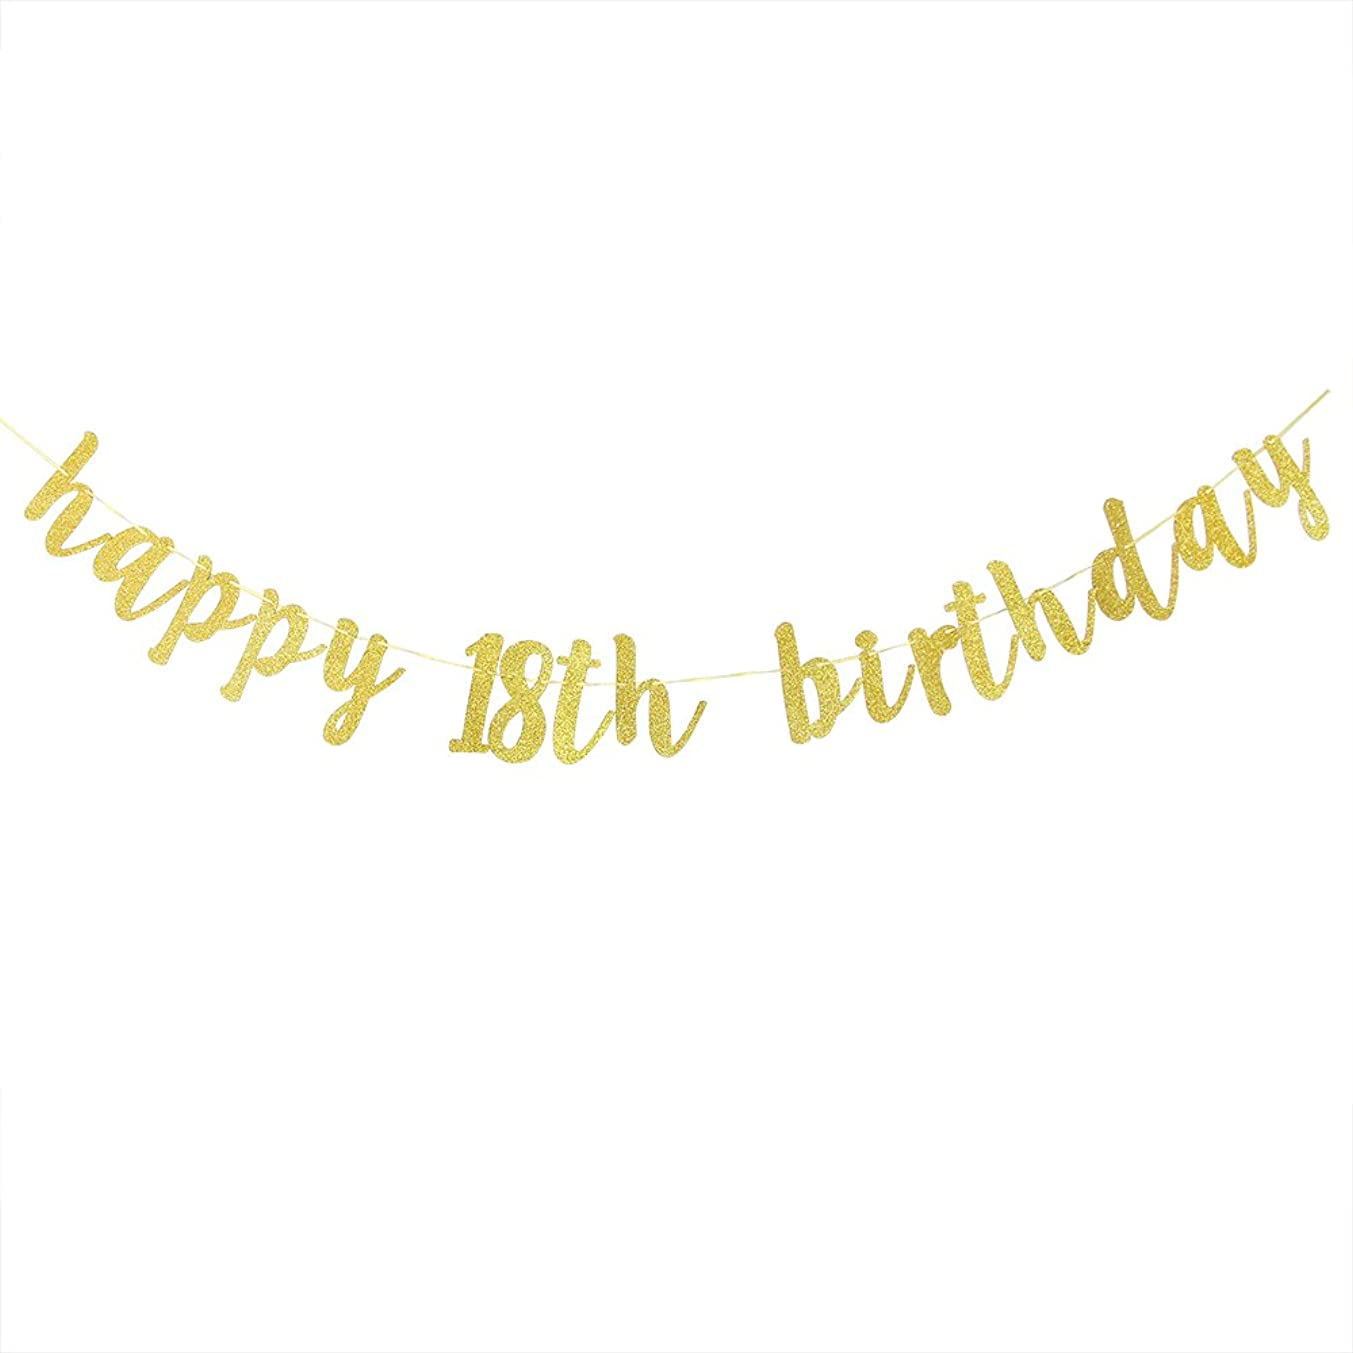 Karoo Jan Happy 18th Birthday Banner Gold Glitter Cheers to 18 Years Hang Bunting?Birthday Party Decorations Supplies